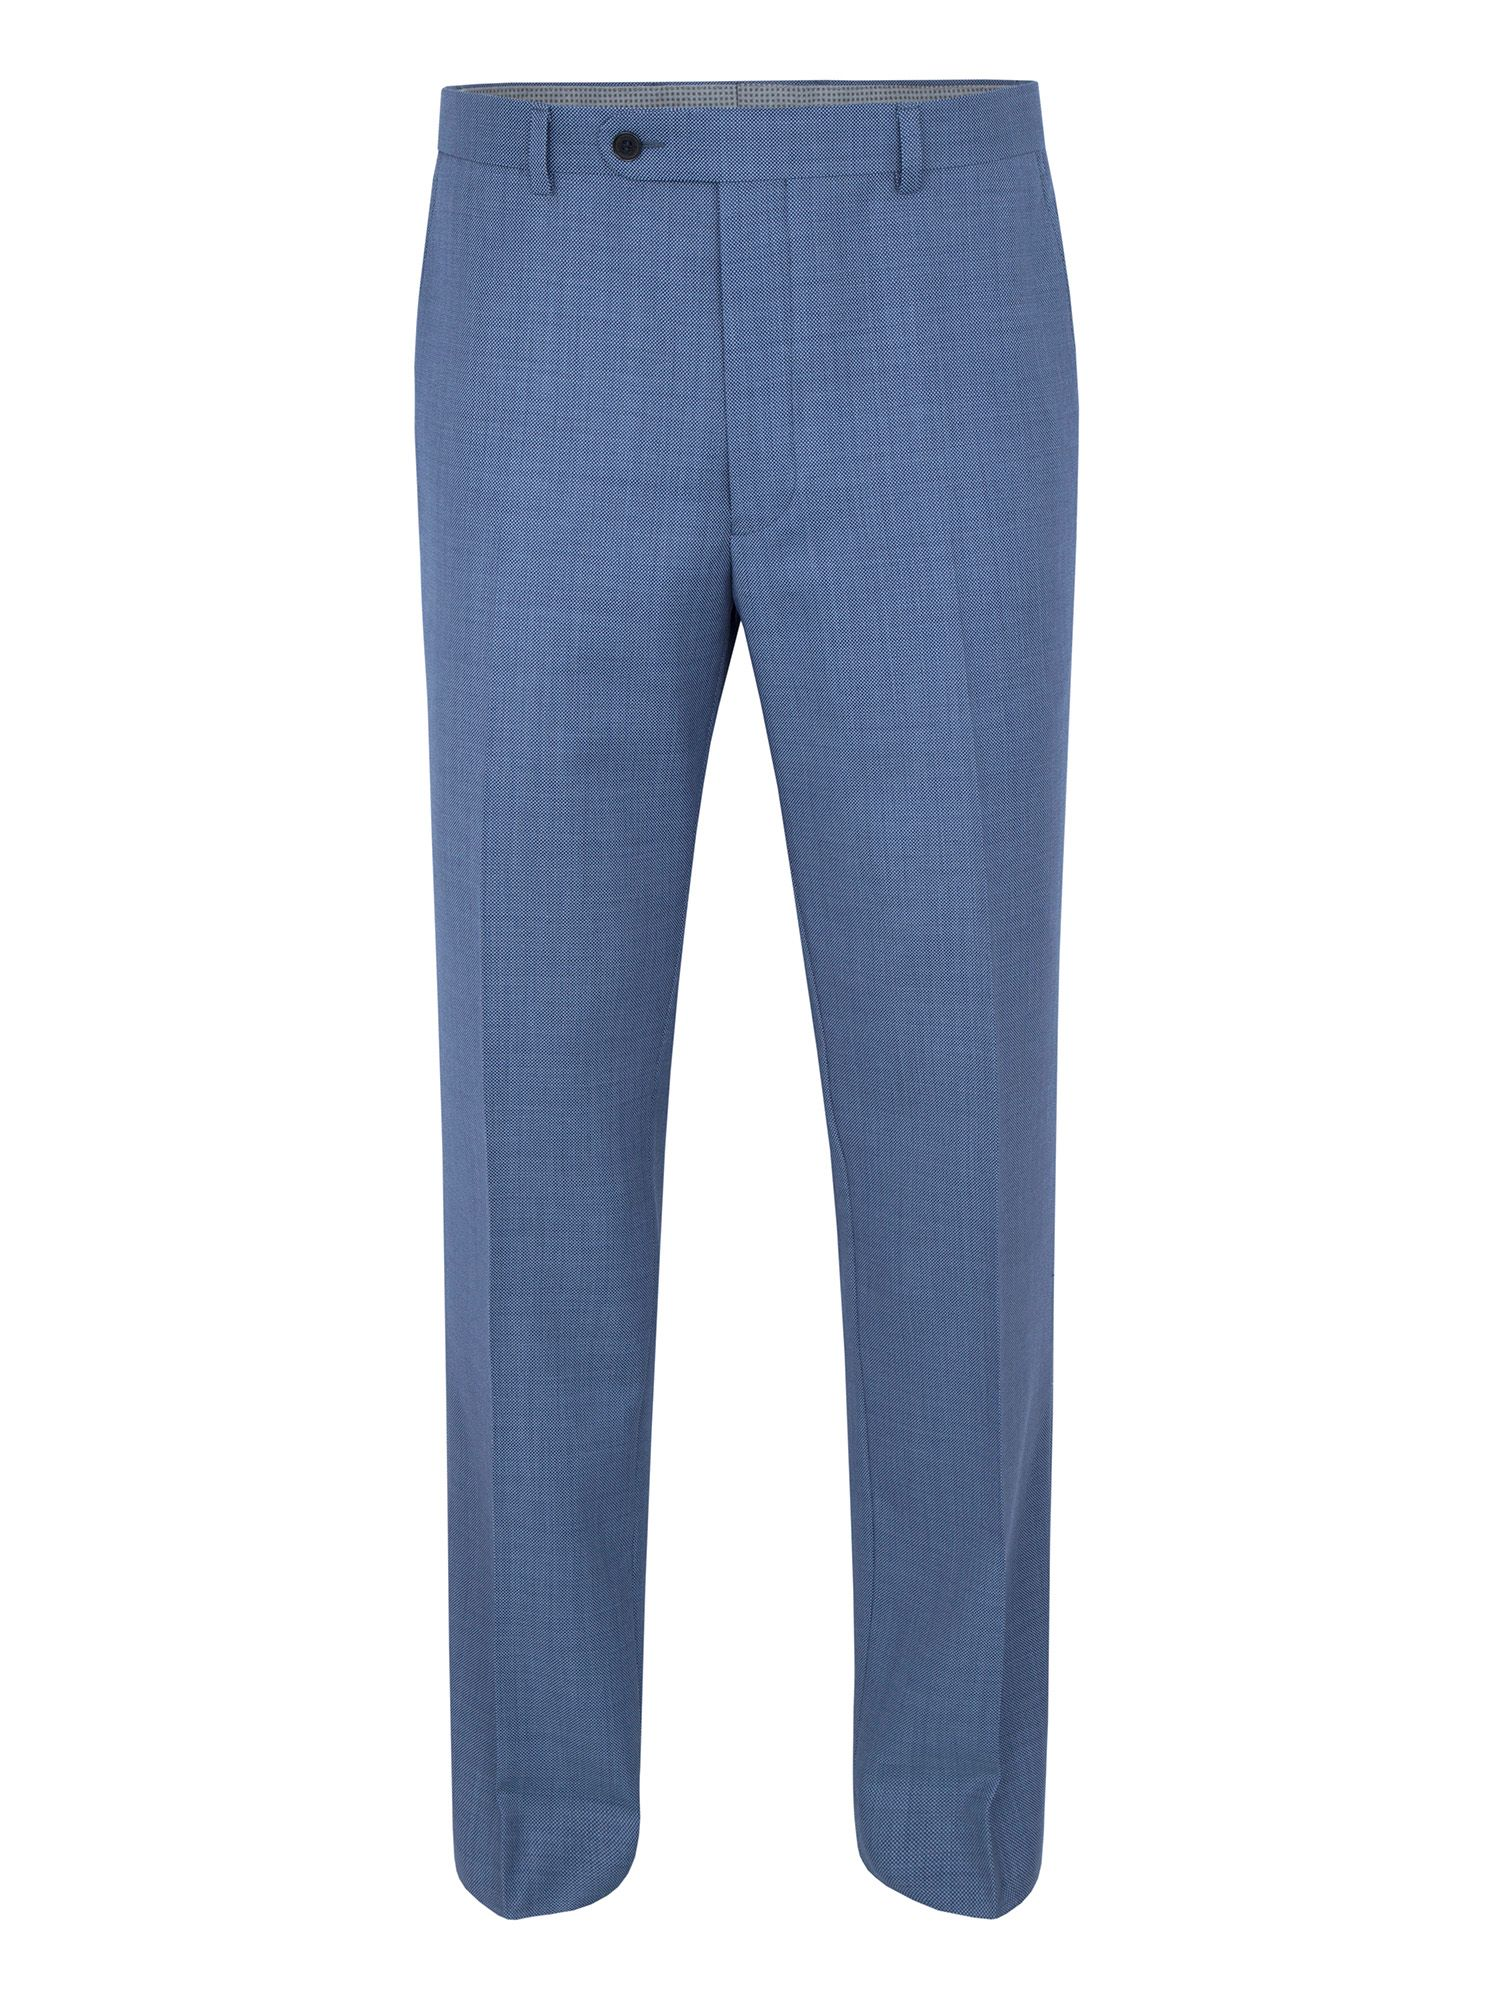 Men's Paul Costelloe Modern fit blue birdseye suit trousers, Light Blue